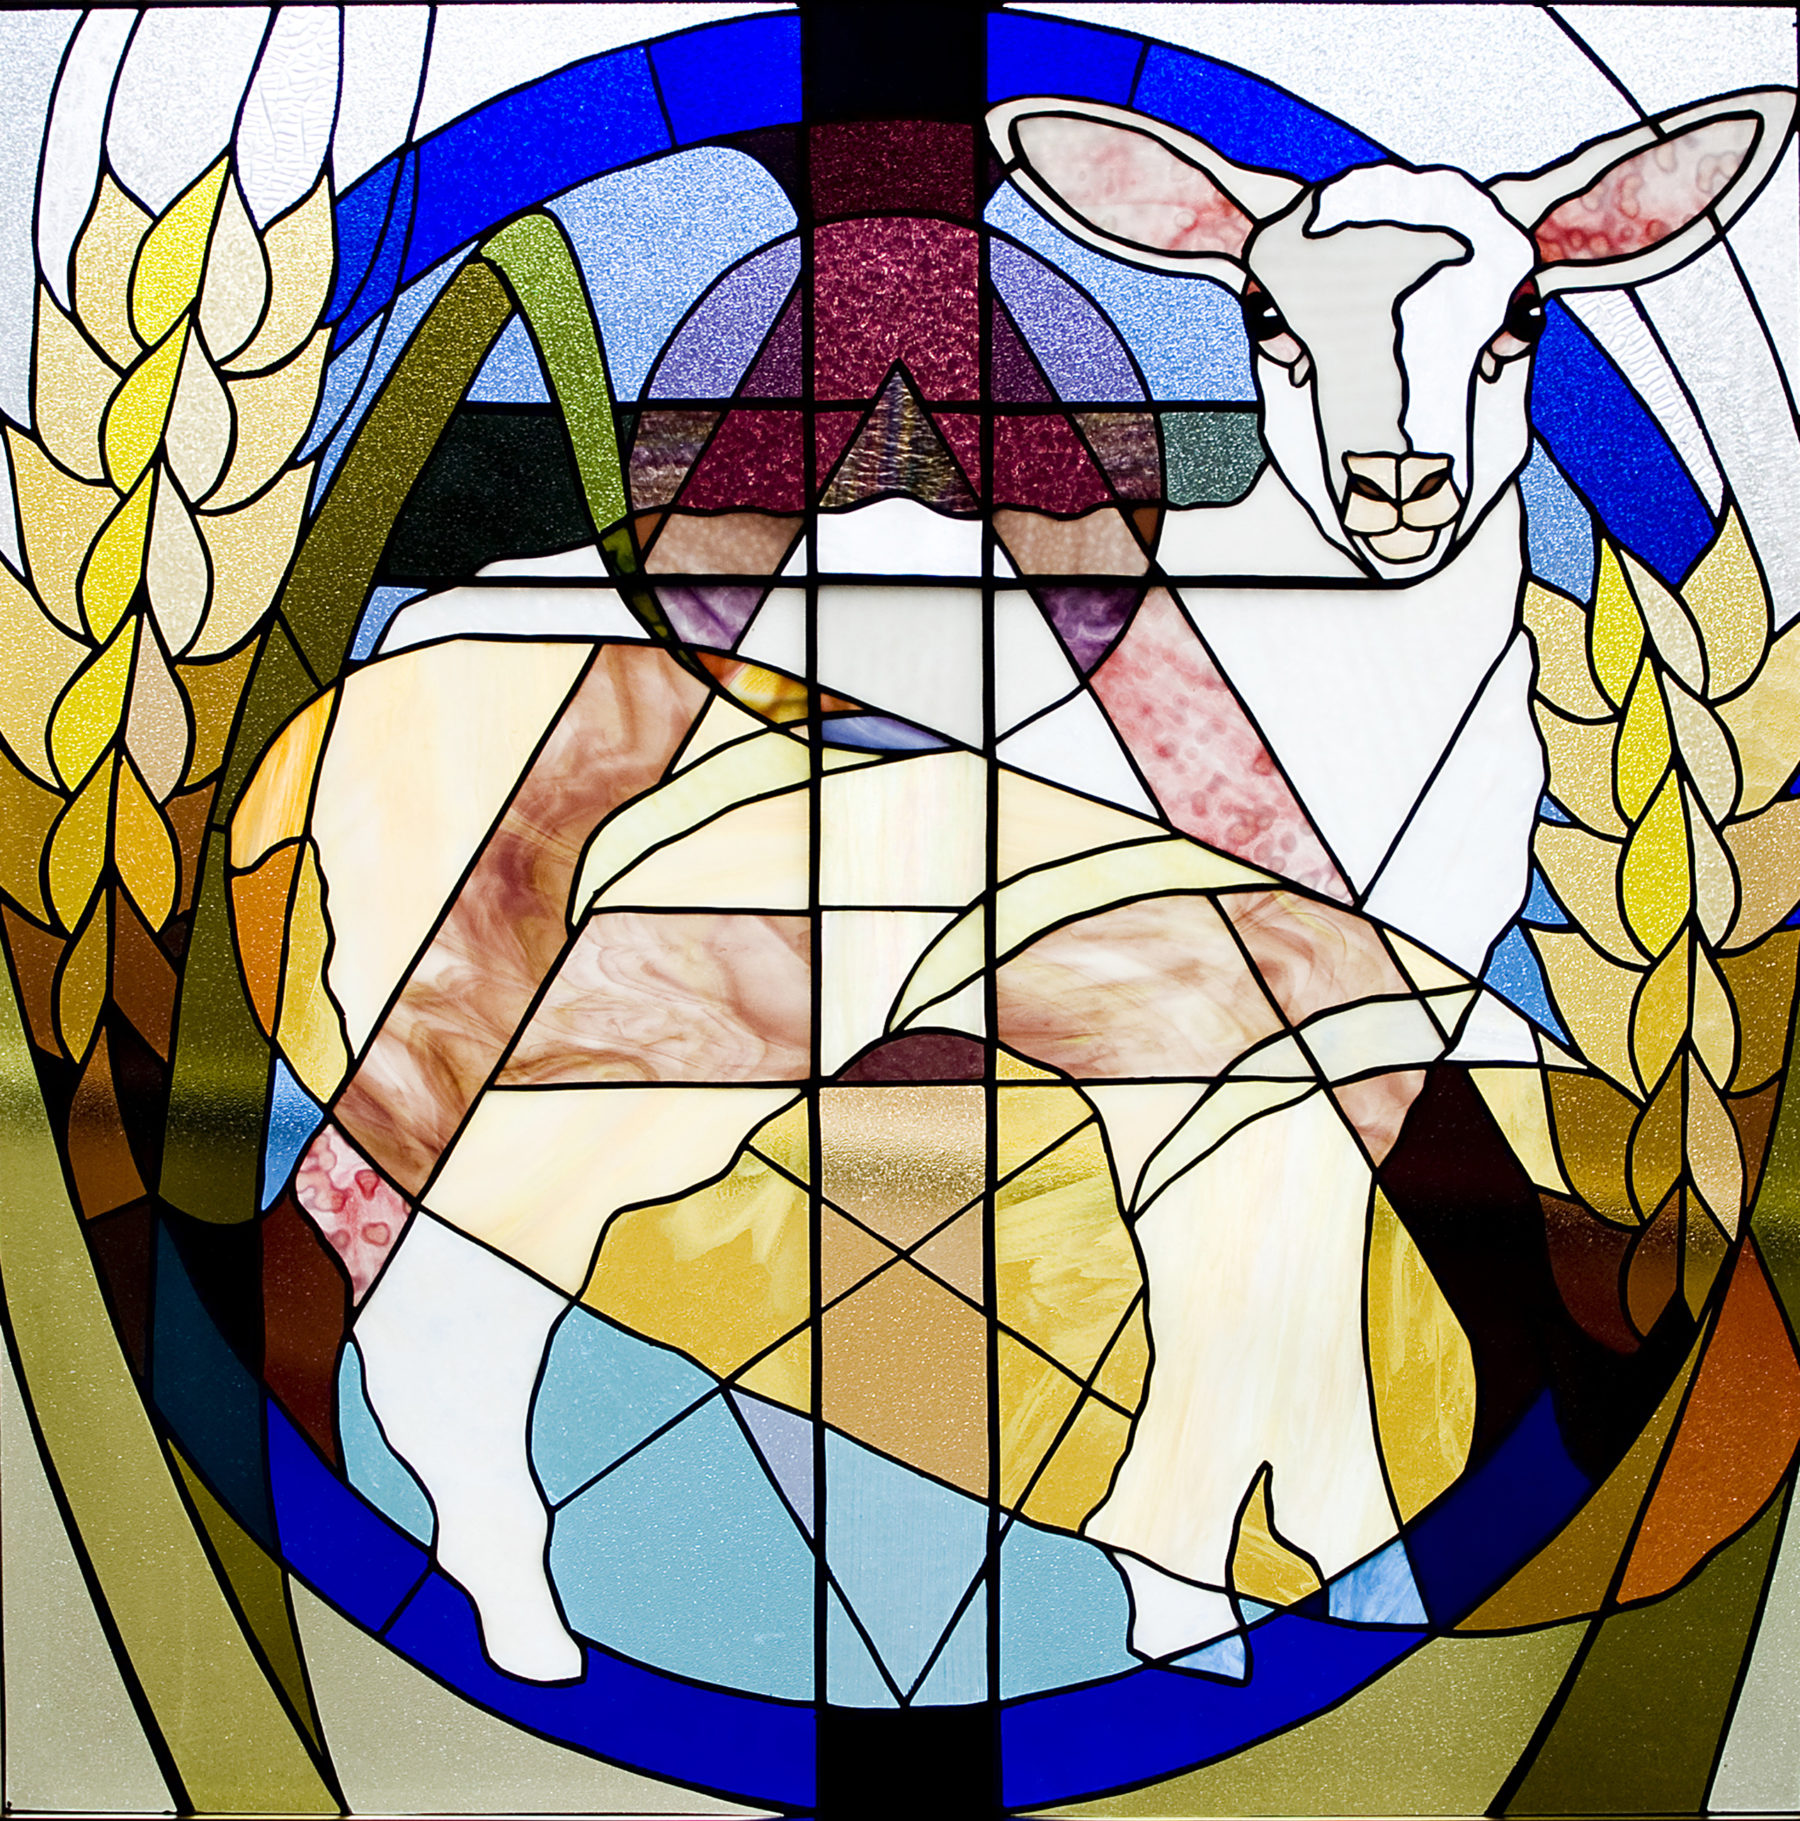 Eucharist Bread Window